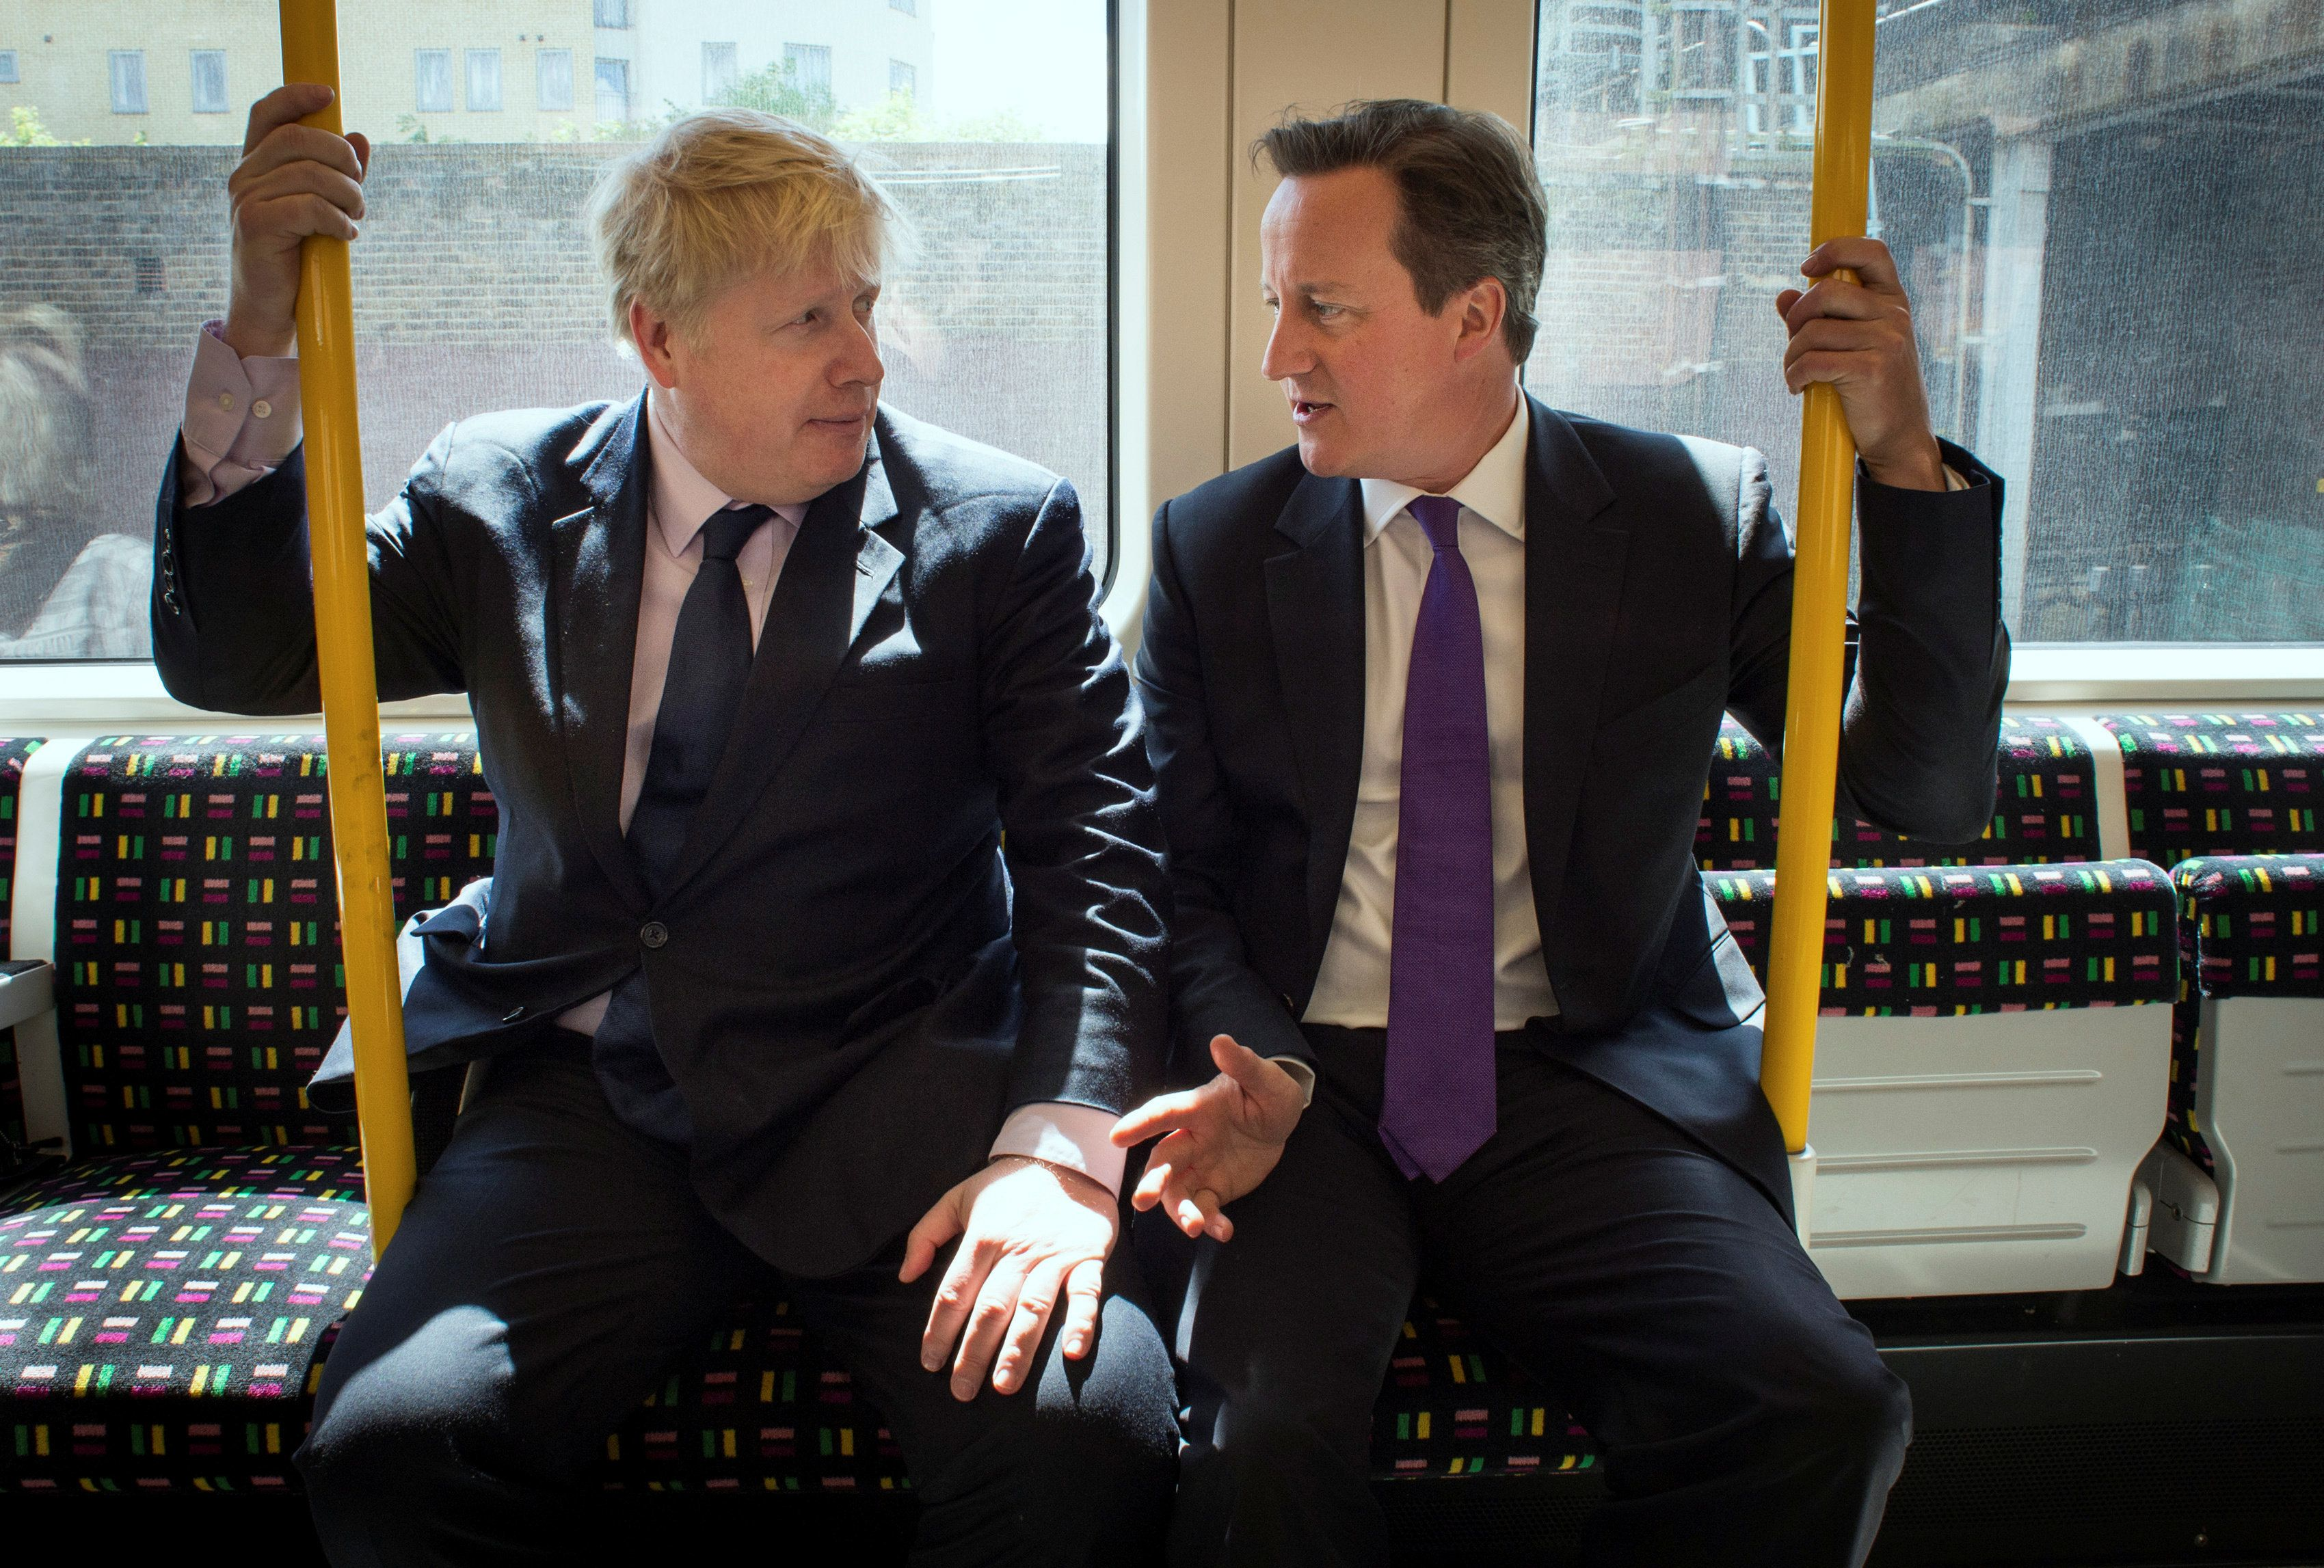 FILE PHOTO: Britain's  Prime Minister David Cameron (R) and London Mayor Boris Johnson sit on an underground train as they head to Westminster after local election campaigning in Harrow, London May 12, 2014. REUTERS/Stefan Rousseau/Pool/File Photo